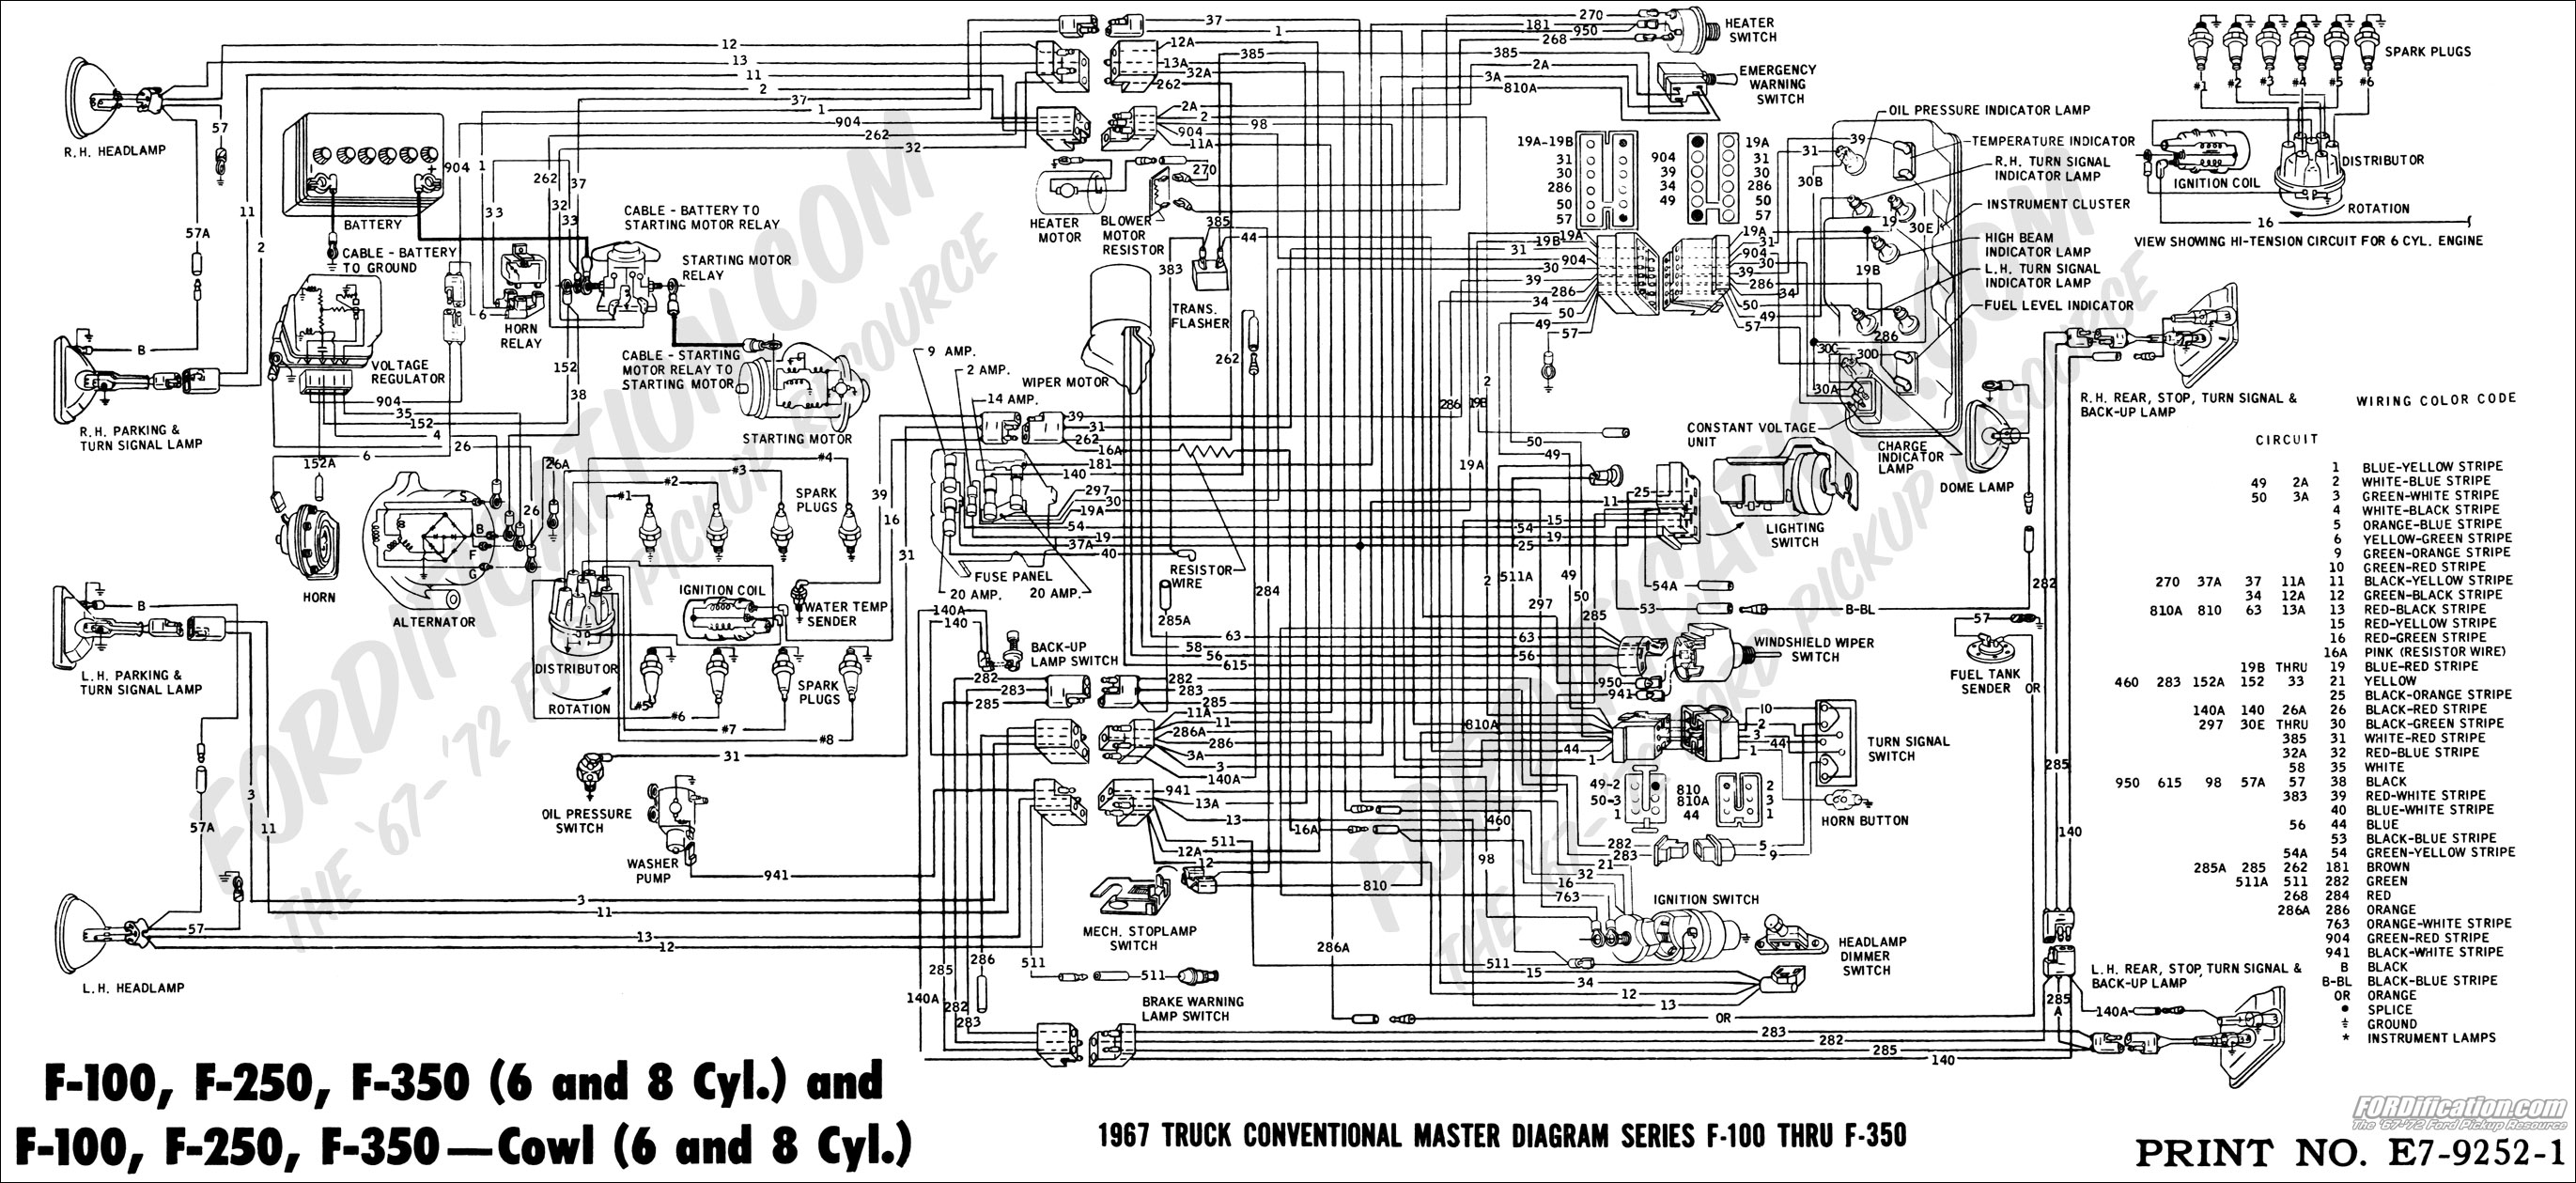 67masterdiagram ford truck technical drawings and schematics section h wiring fordification wiring diagram at virtualis.co